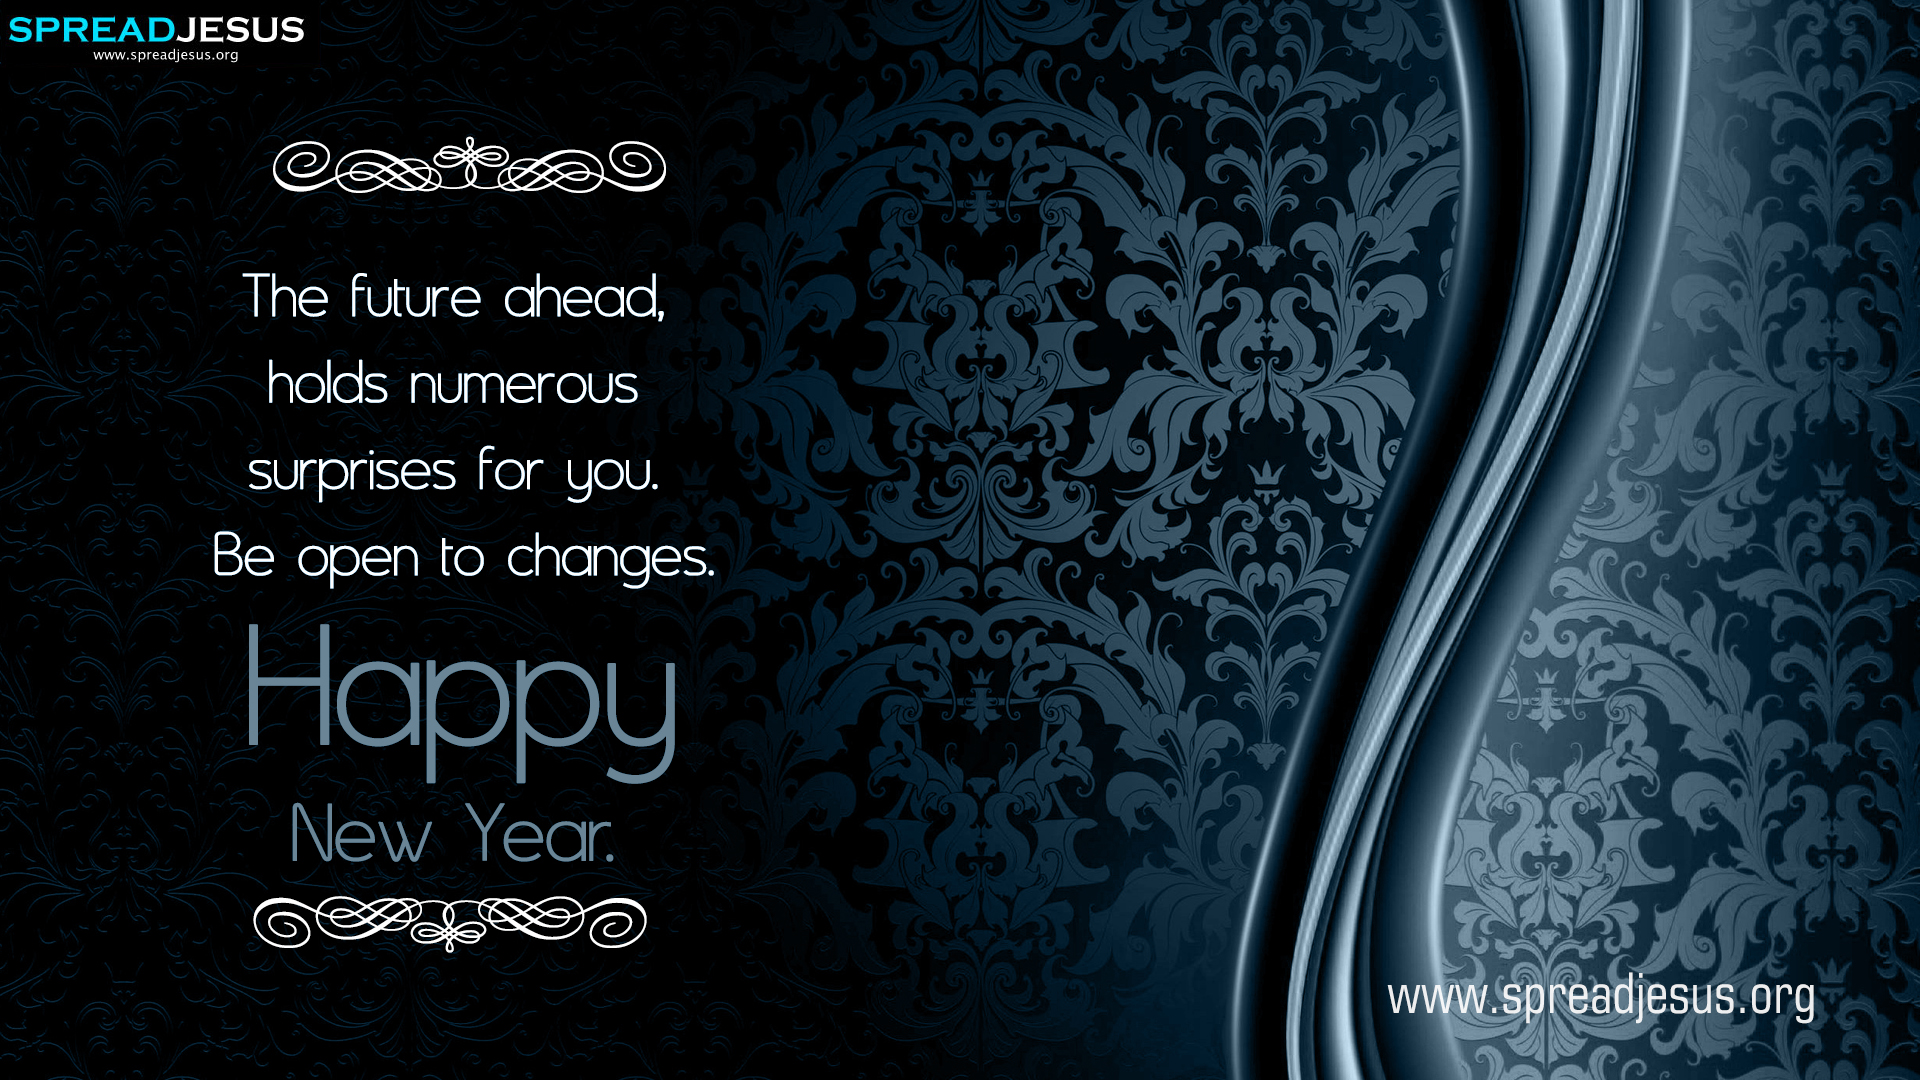 Happy New Year Hd Wallpapers Free Download-1-Happy New Year 2017 HD Wallpapers Download